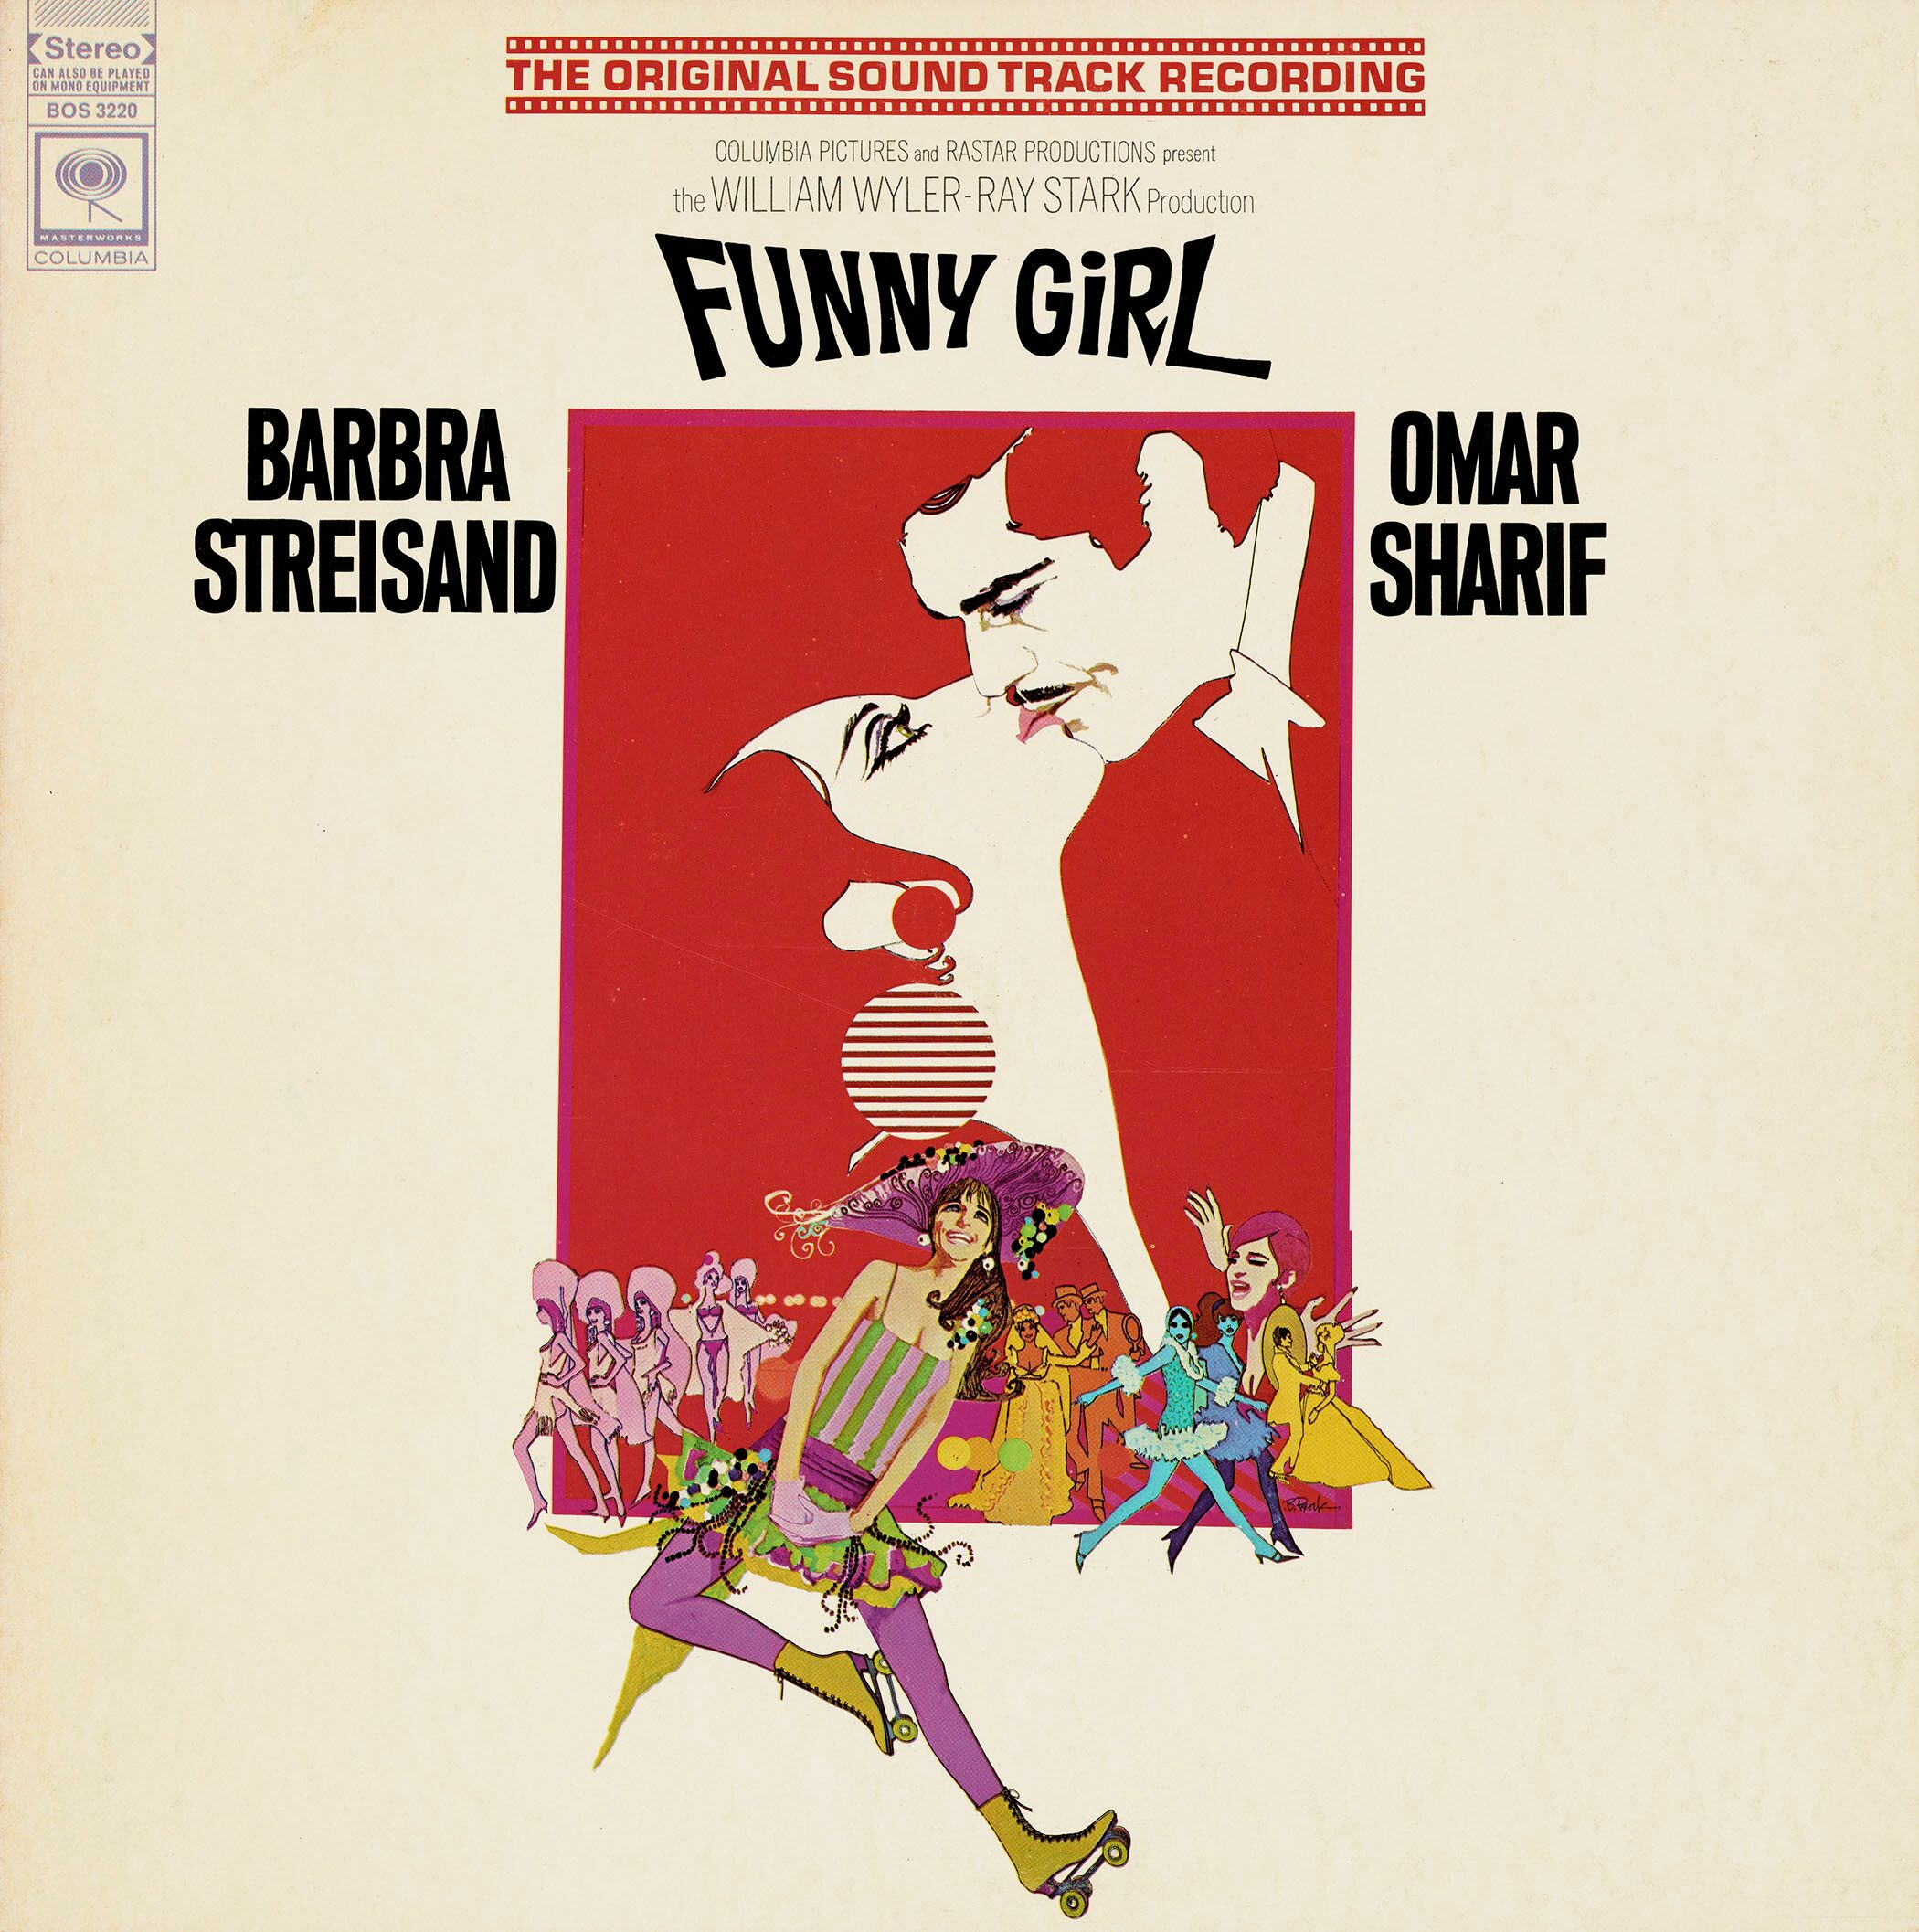 LP soundtrack cover